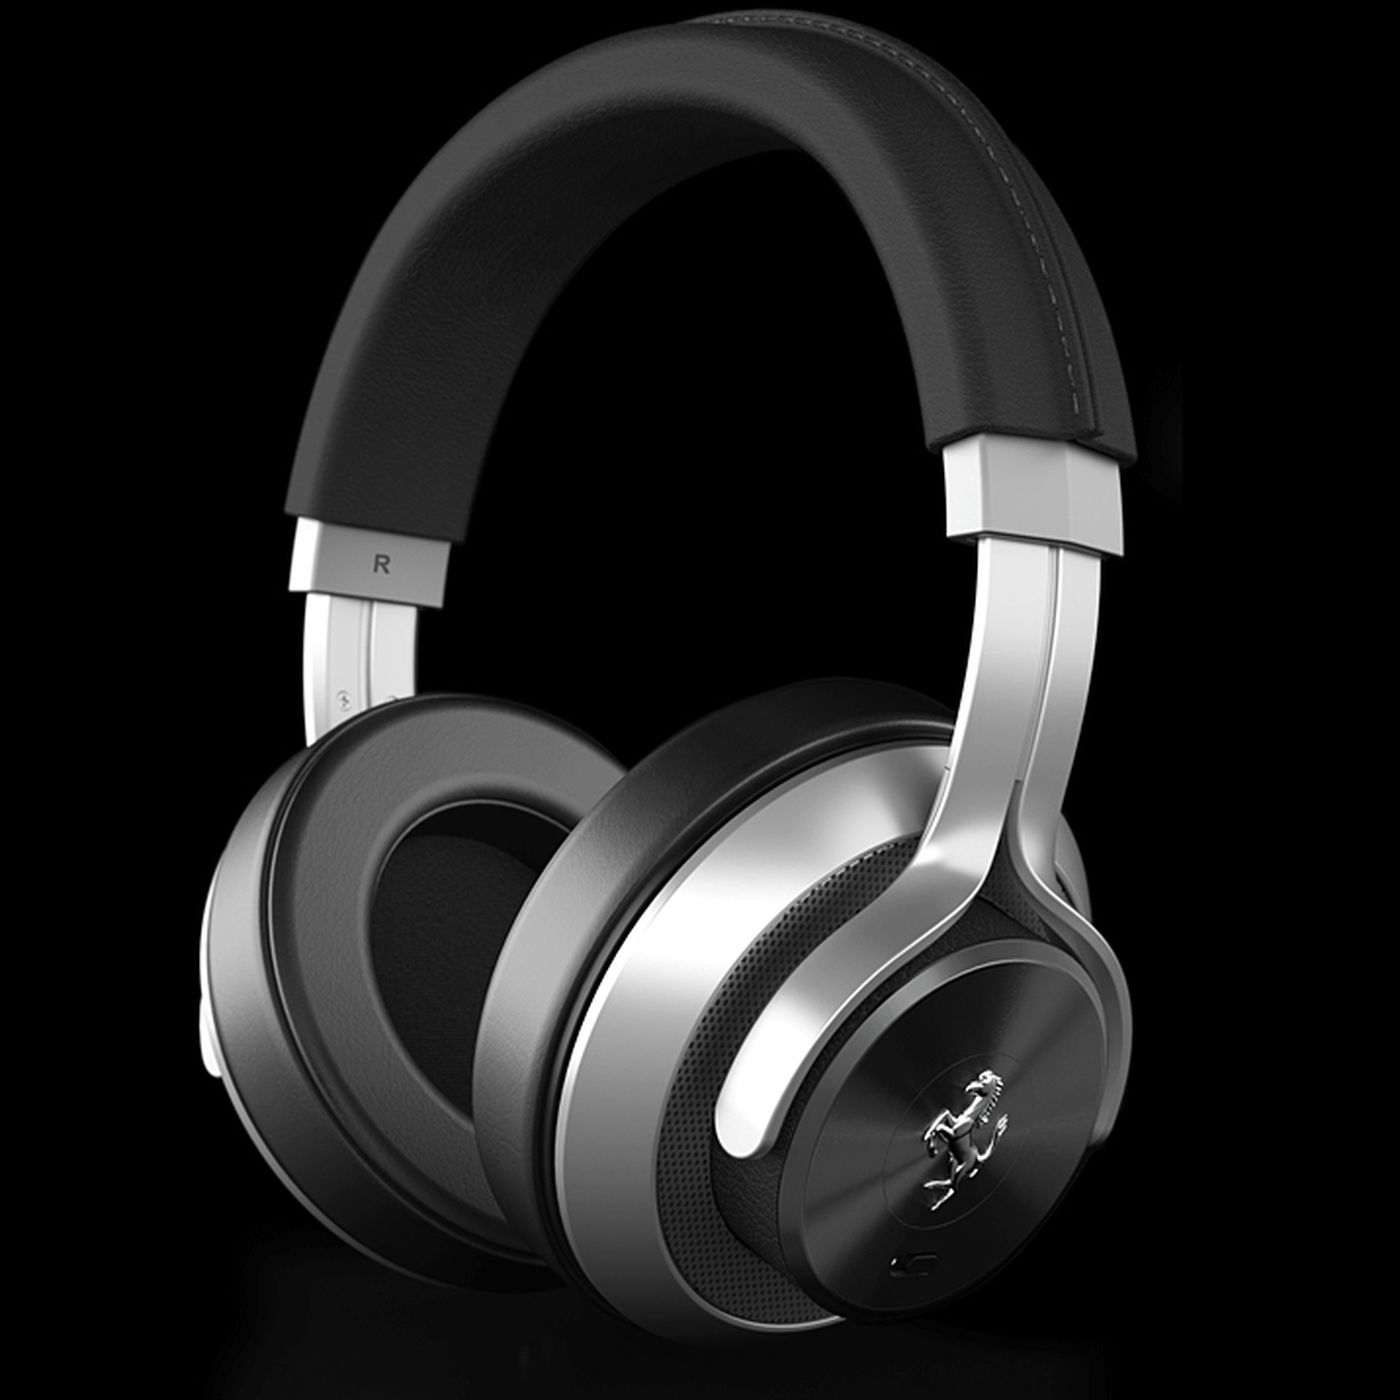 headphone audiophile noontec ferrari hamo best wireless on top headphones news the magnetic planar pro review